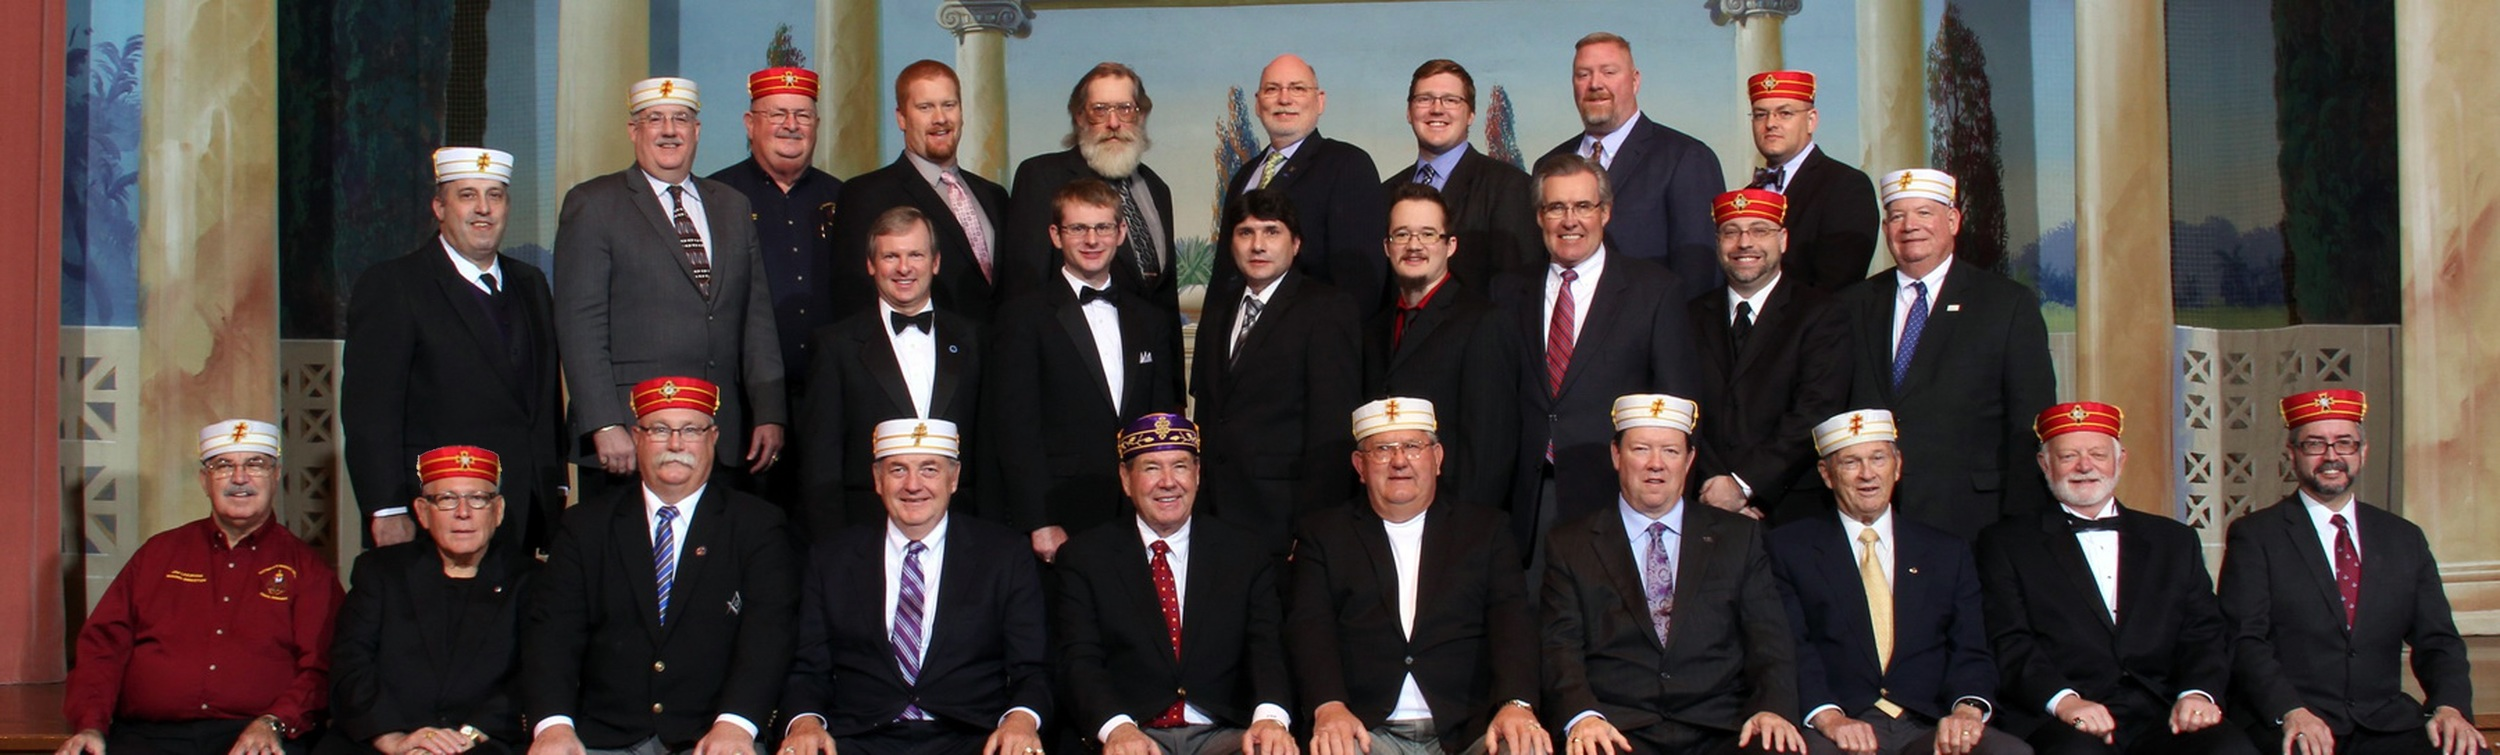 Scottish Rite Masons and the new brethren of the Larry J. Zwart, 33° Memorial Class, November, 2015